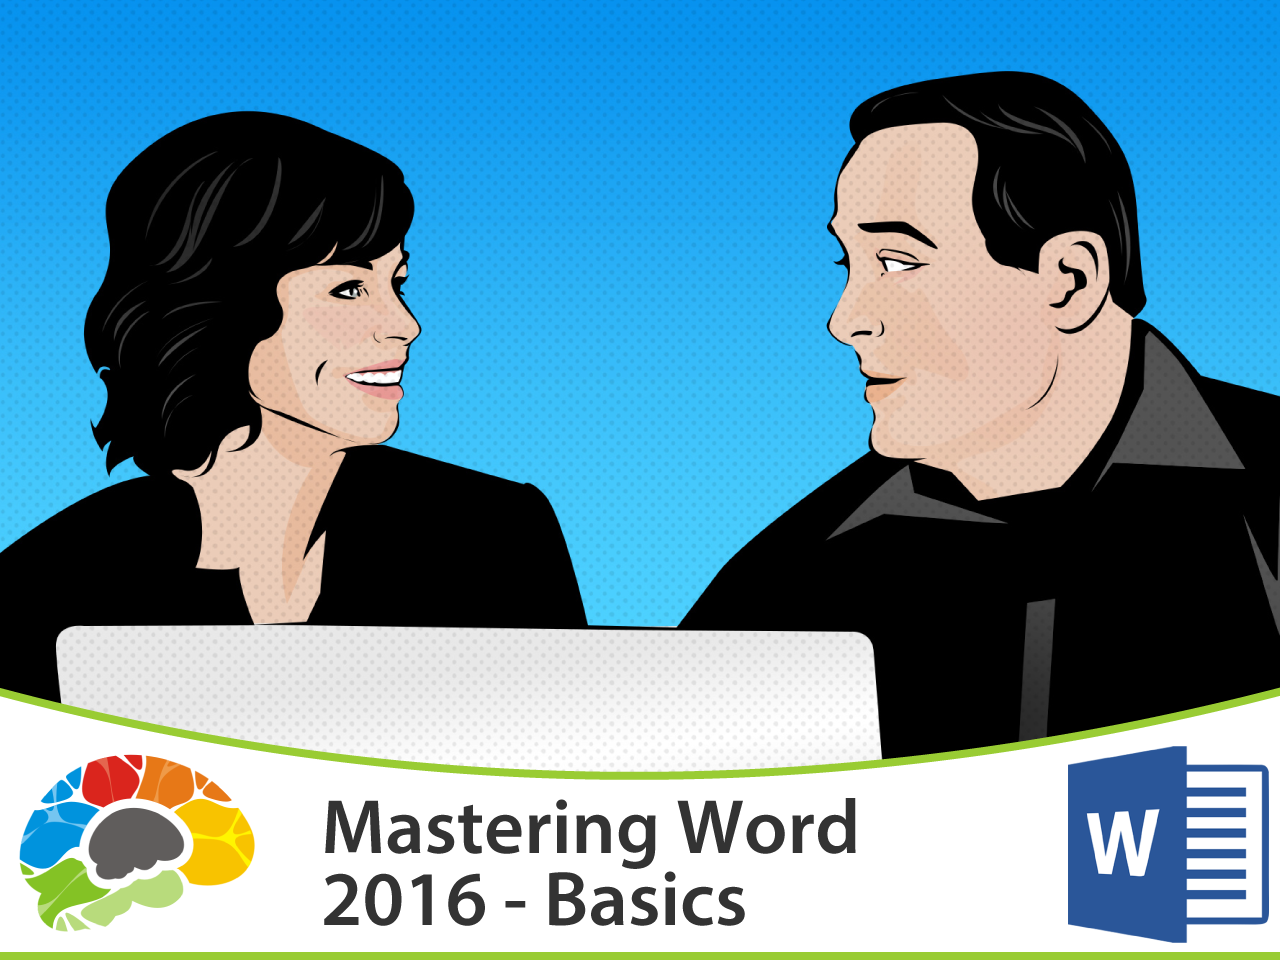 Mastering Word 2016 (full course), Singapore elarning online course